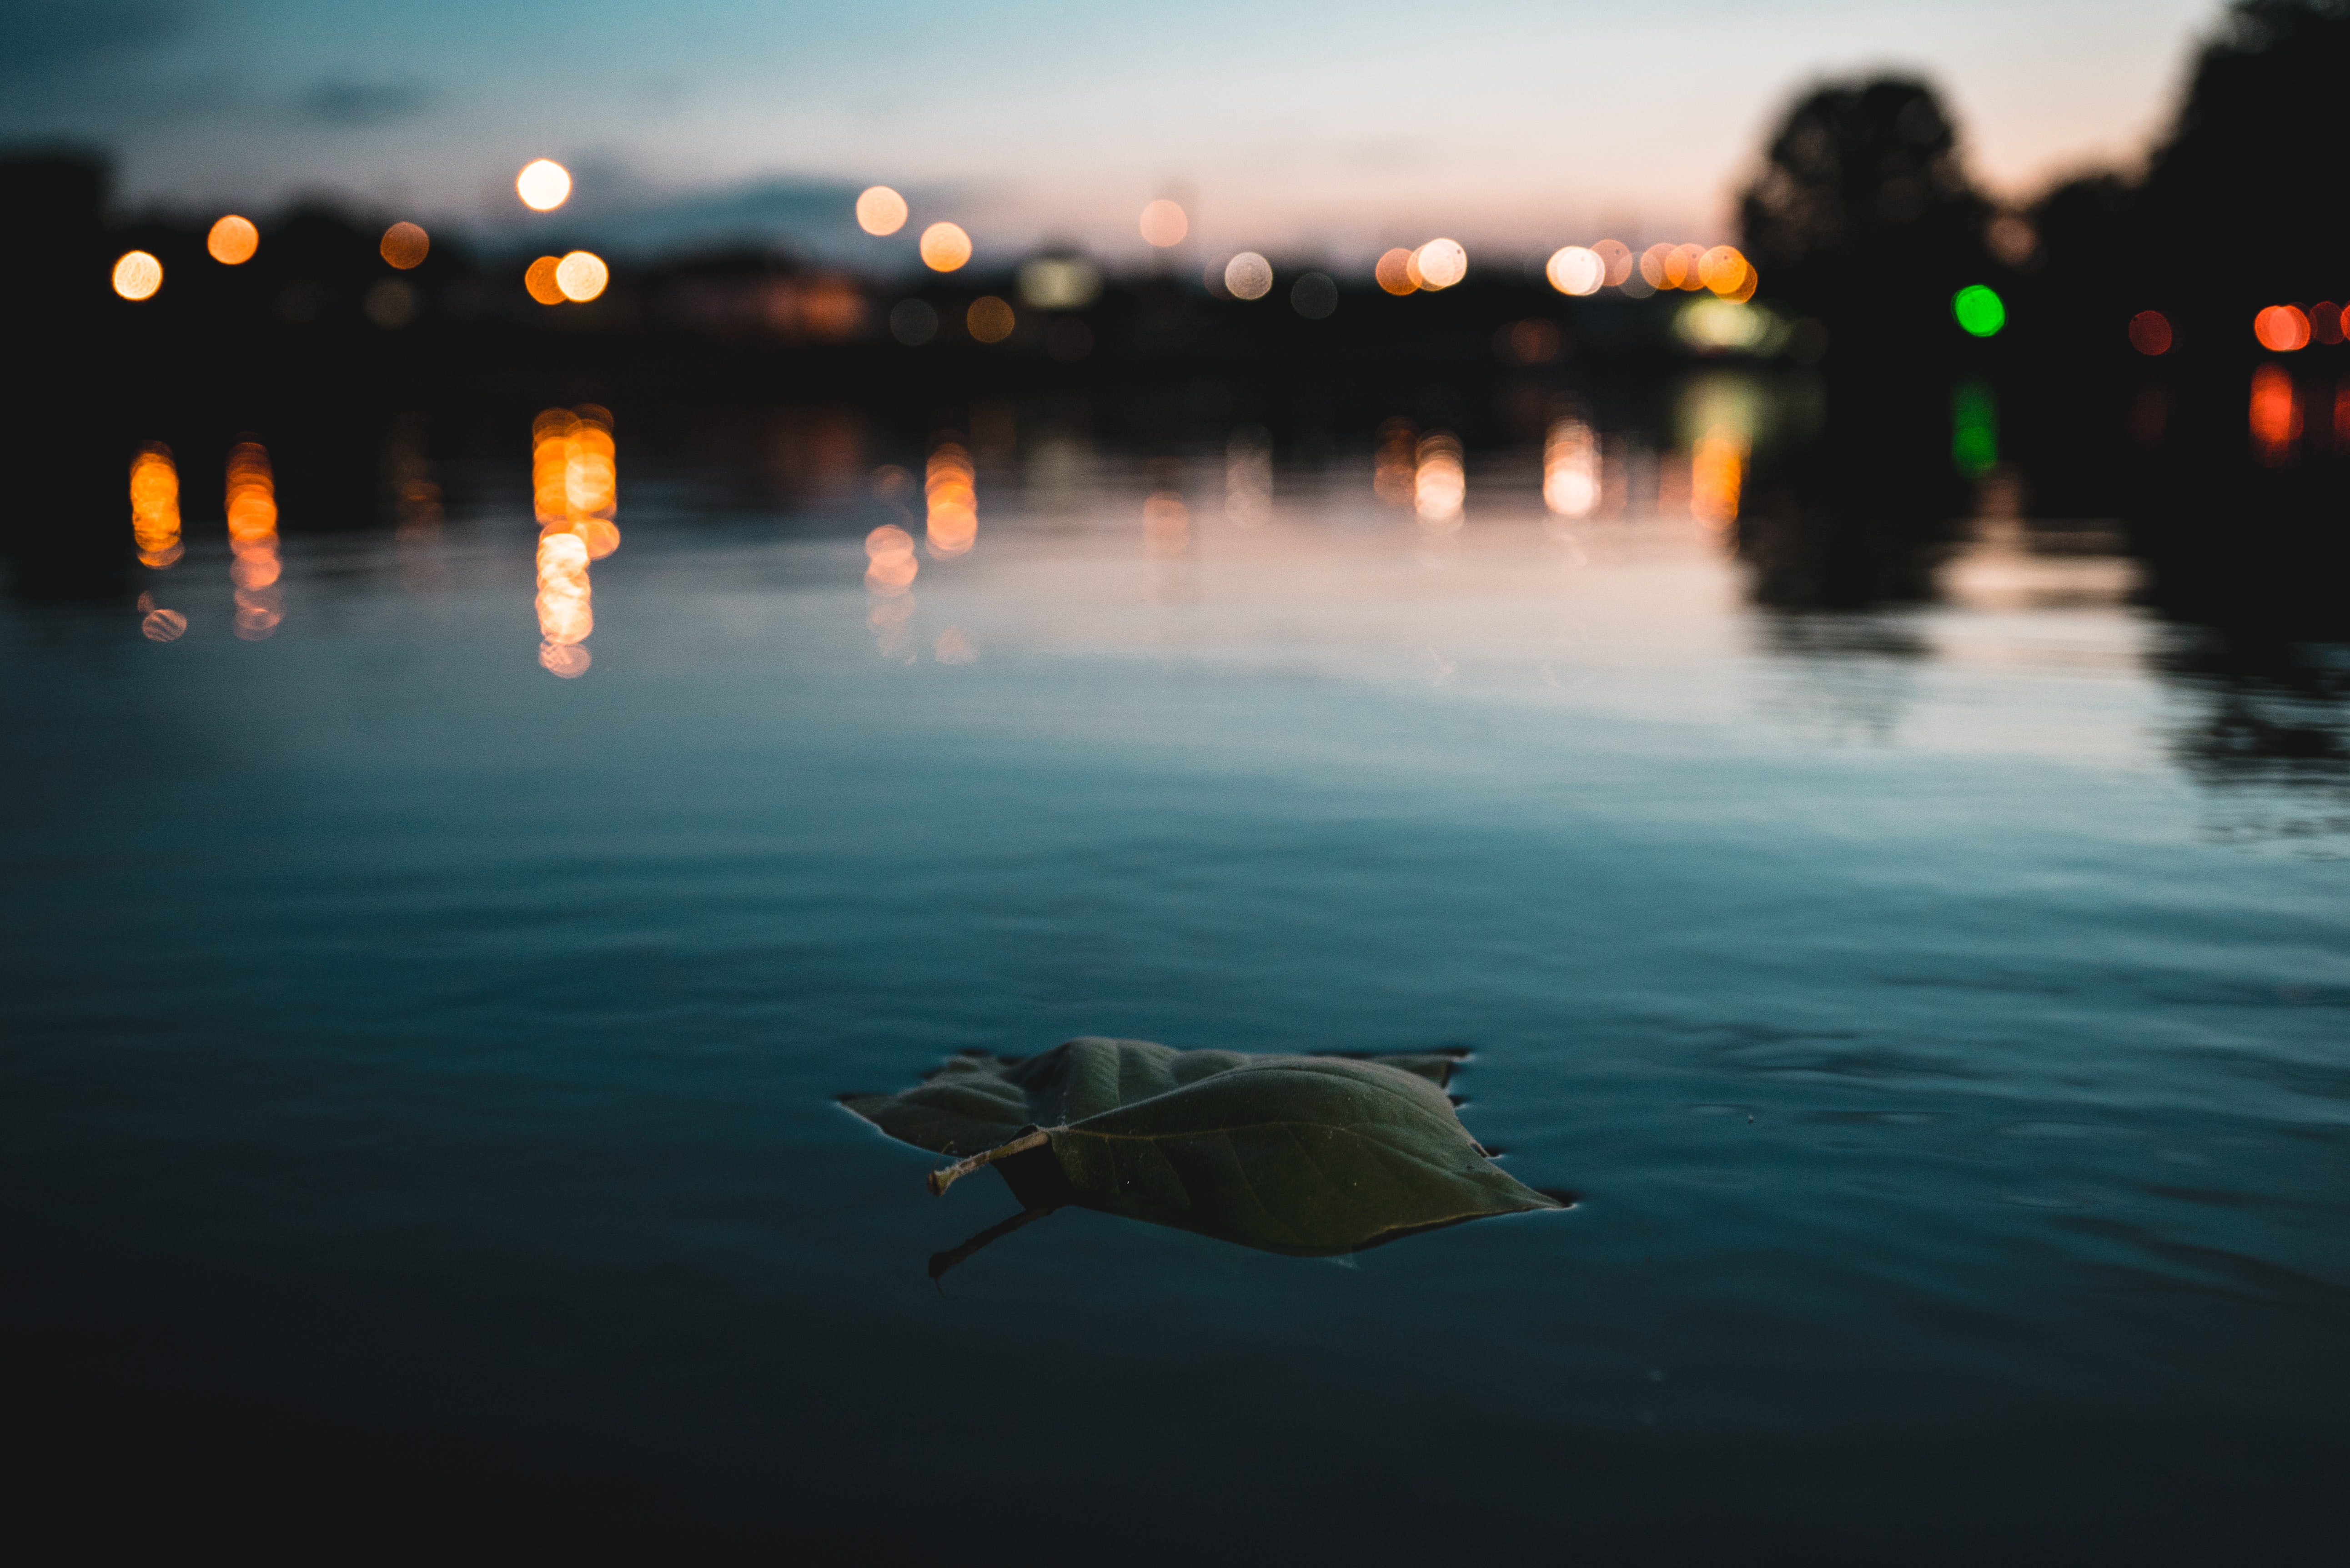 leaf floating on body of water